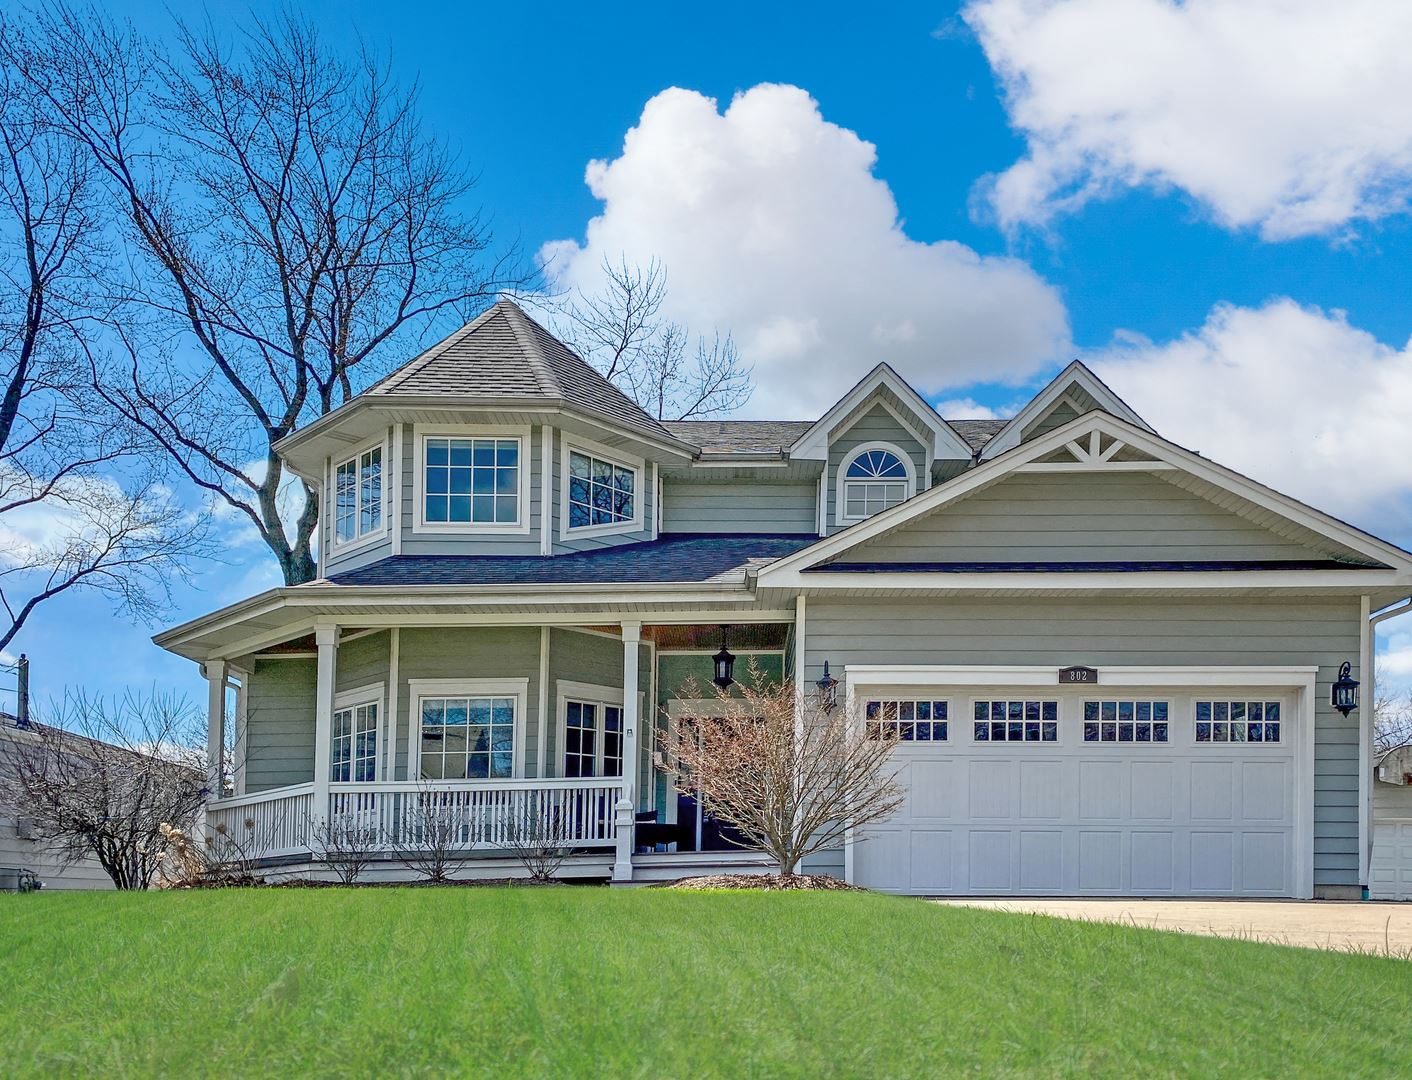 802 E EVERGREEN Street, Wheaton, IL 60187 - #: 10763389